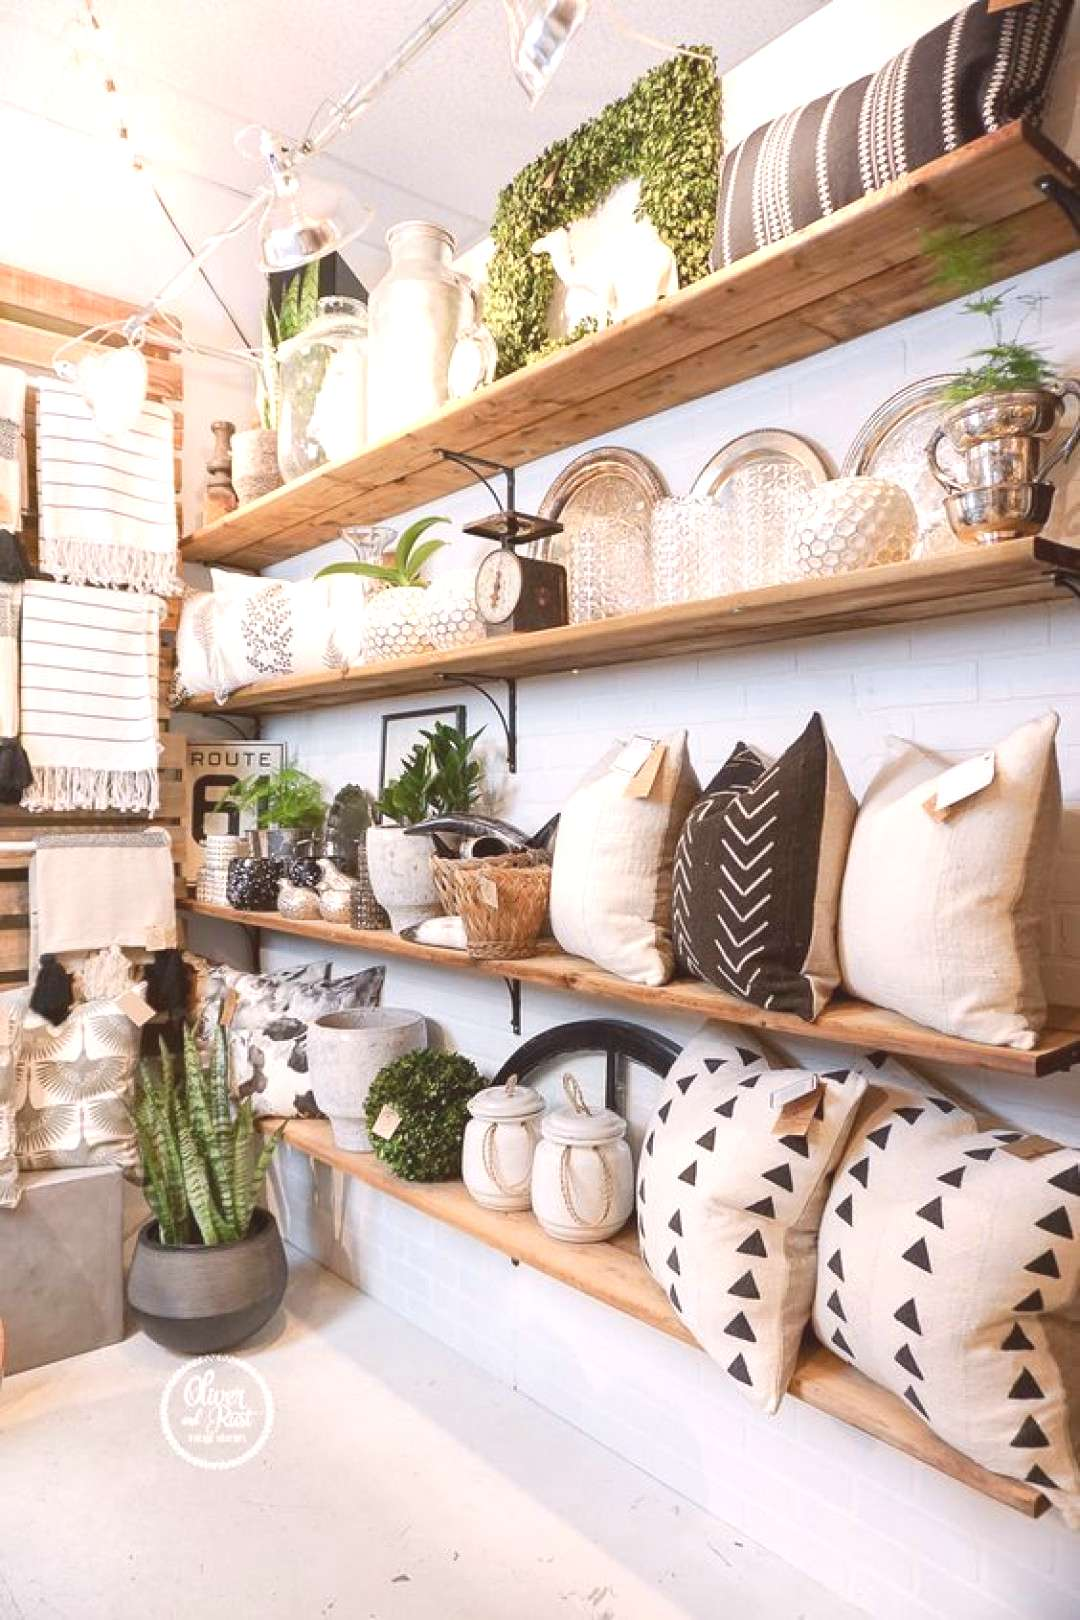 Don't Overlook These Things When Opening Your Interior Design Shop